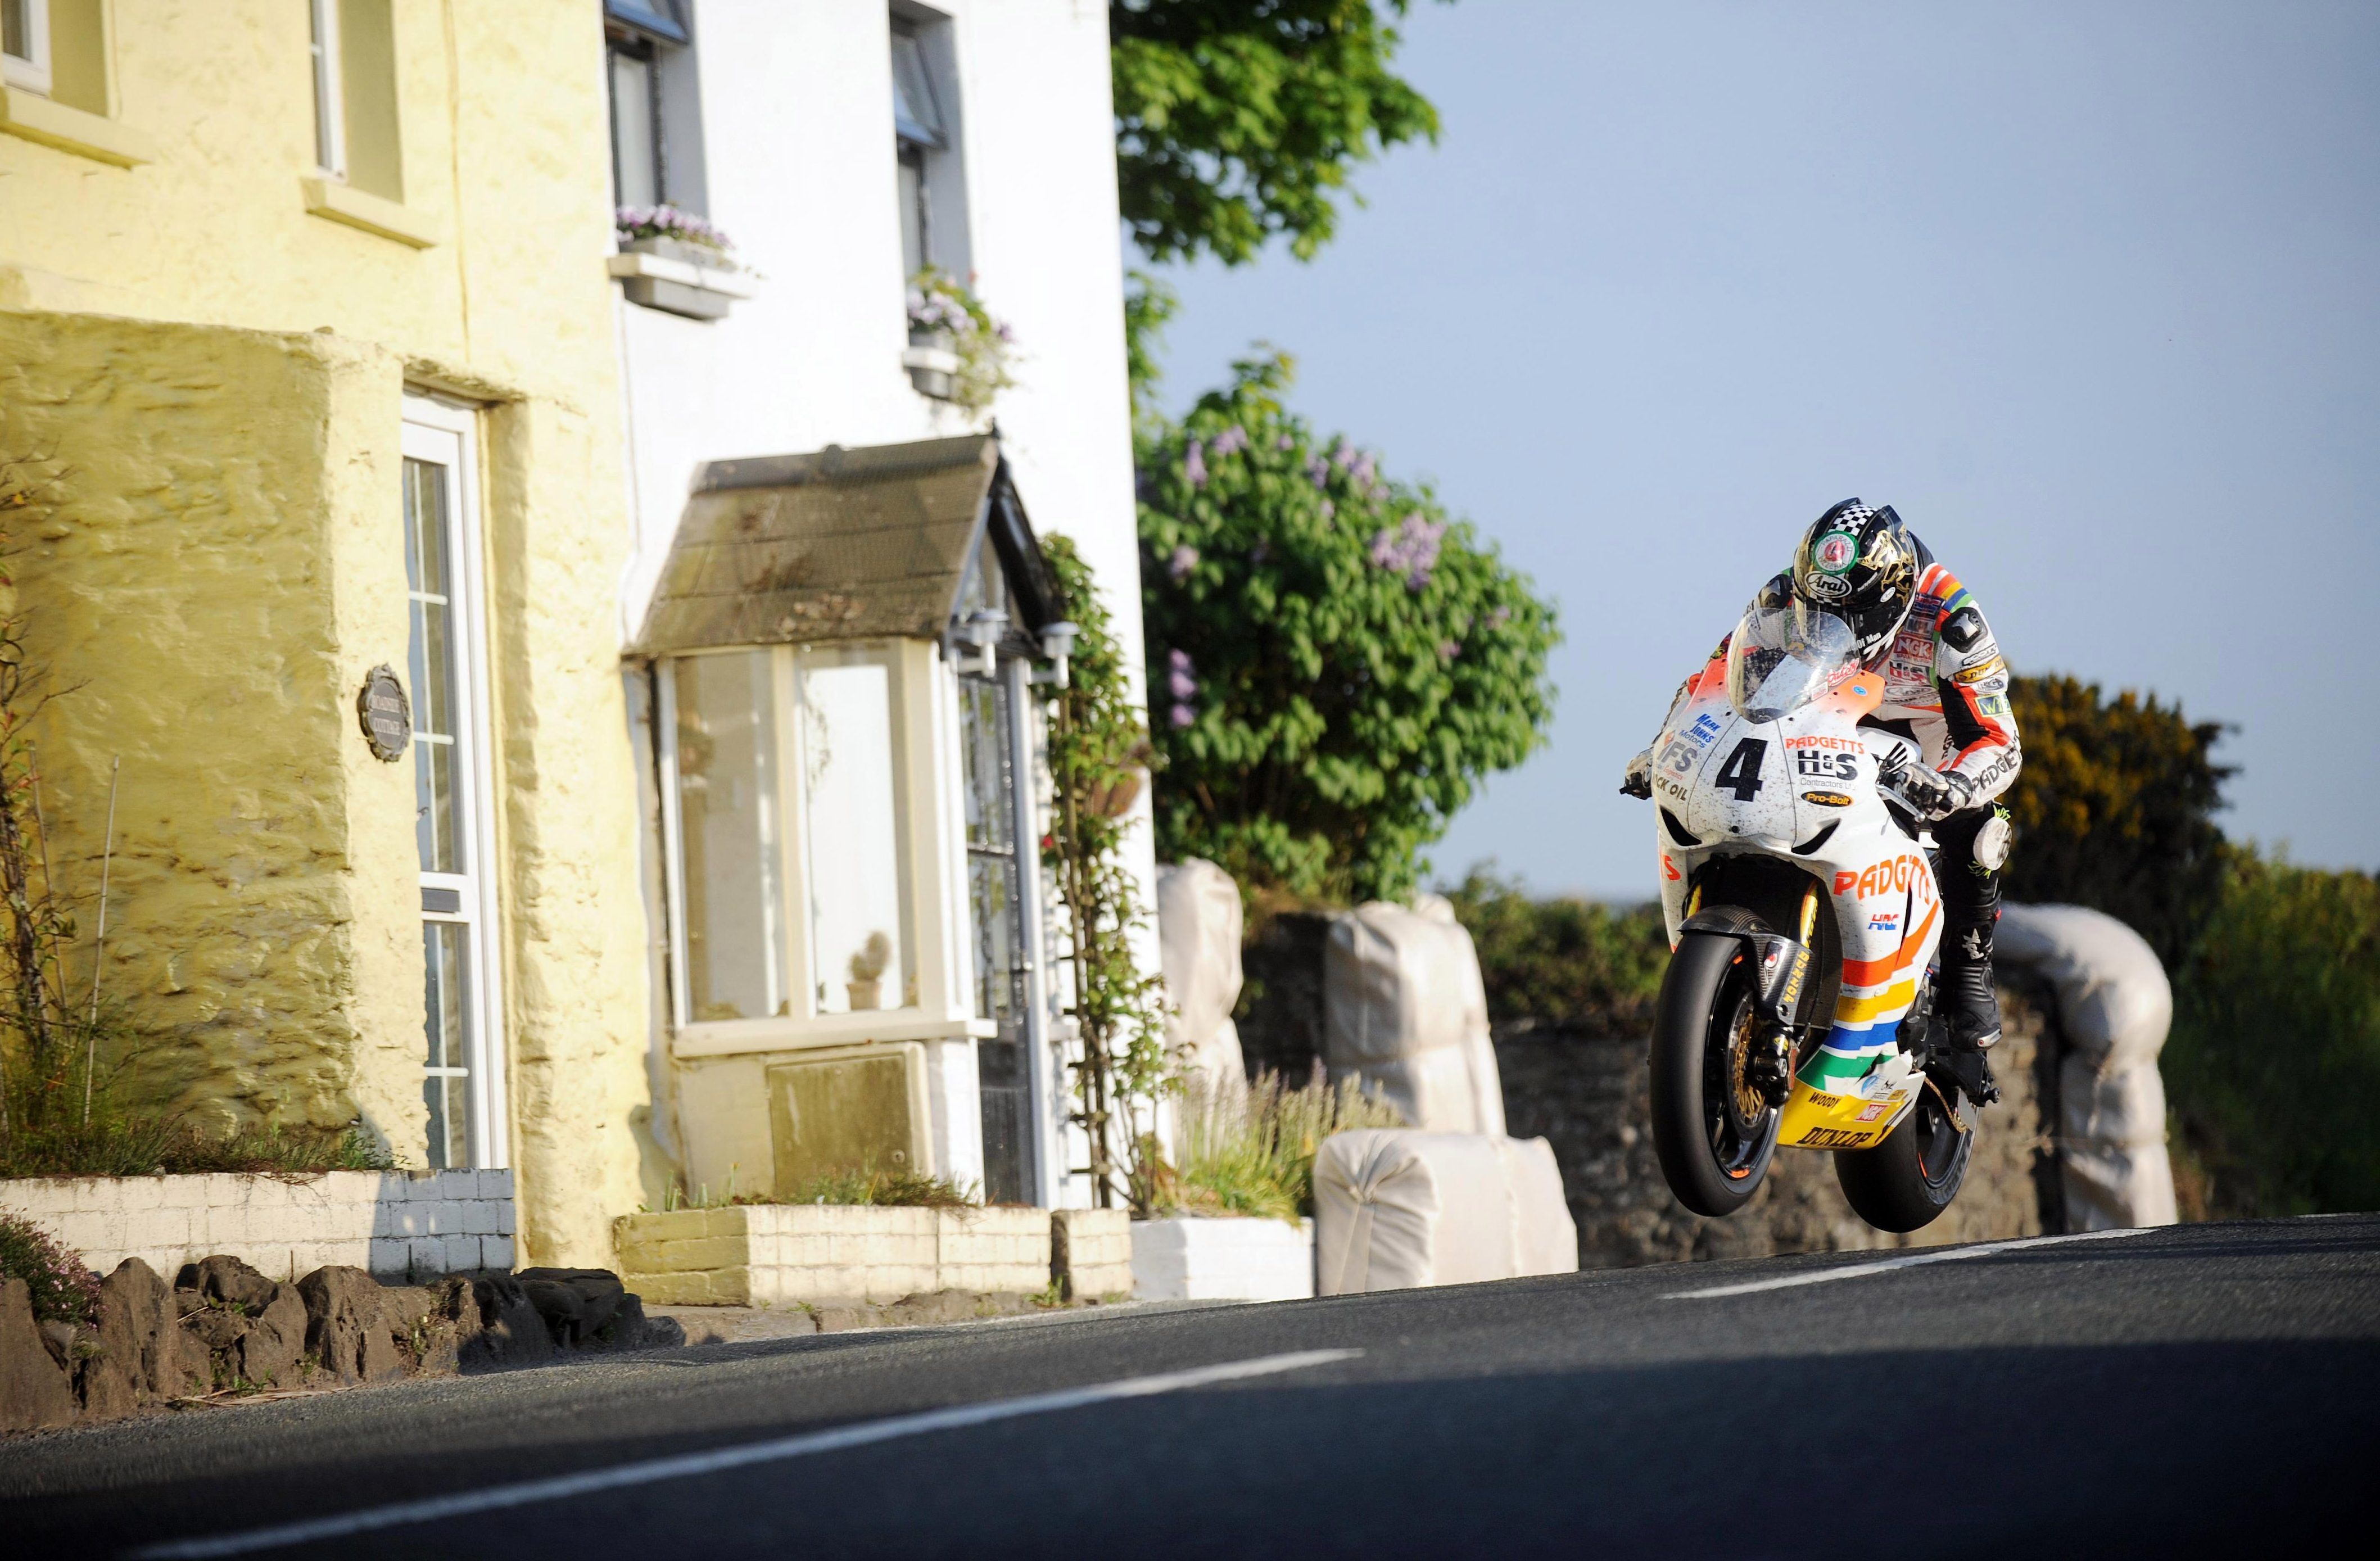 Riders have achieved speeds of more than 206mph on the Mountain Course